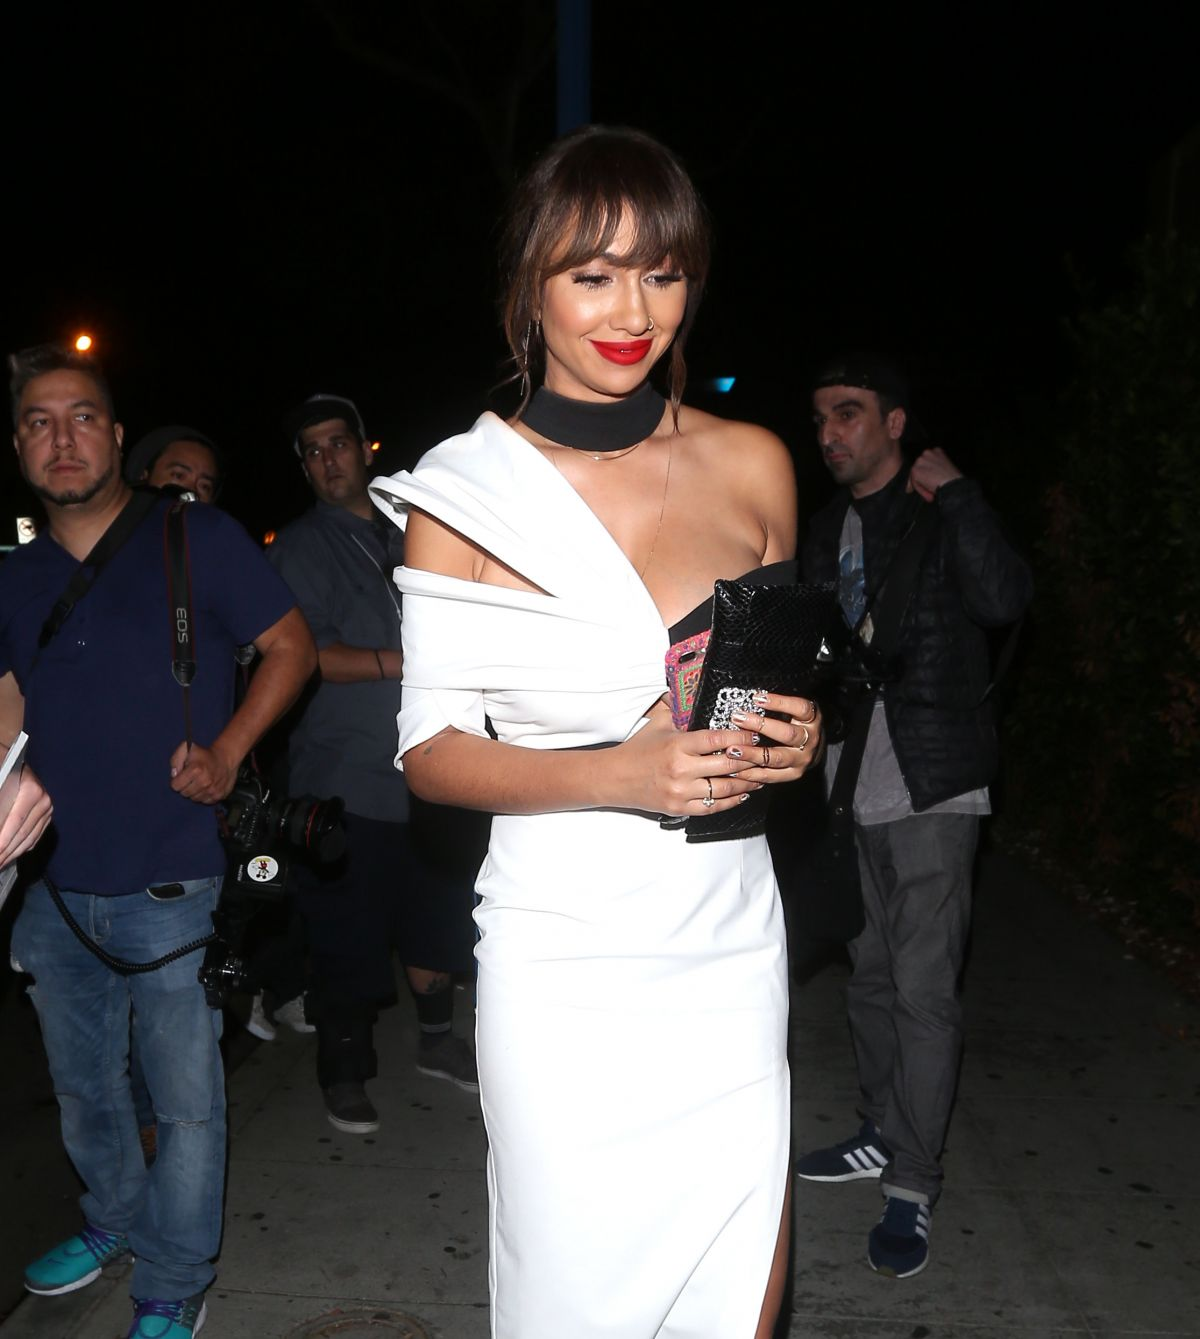 JACKIE CRUZ at Delilah in West Hollywood 06/16/2017